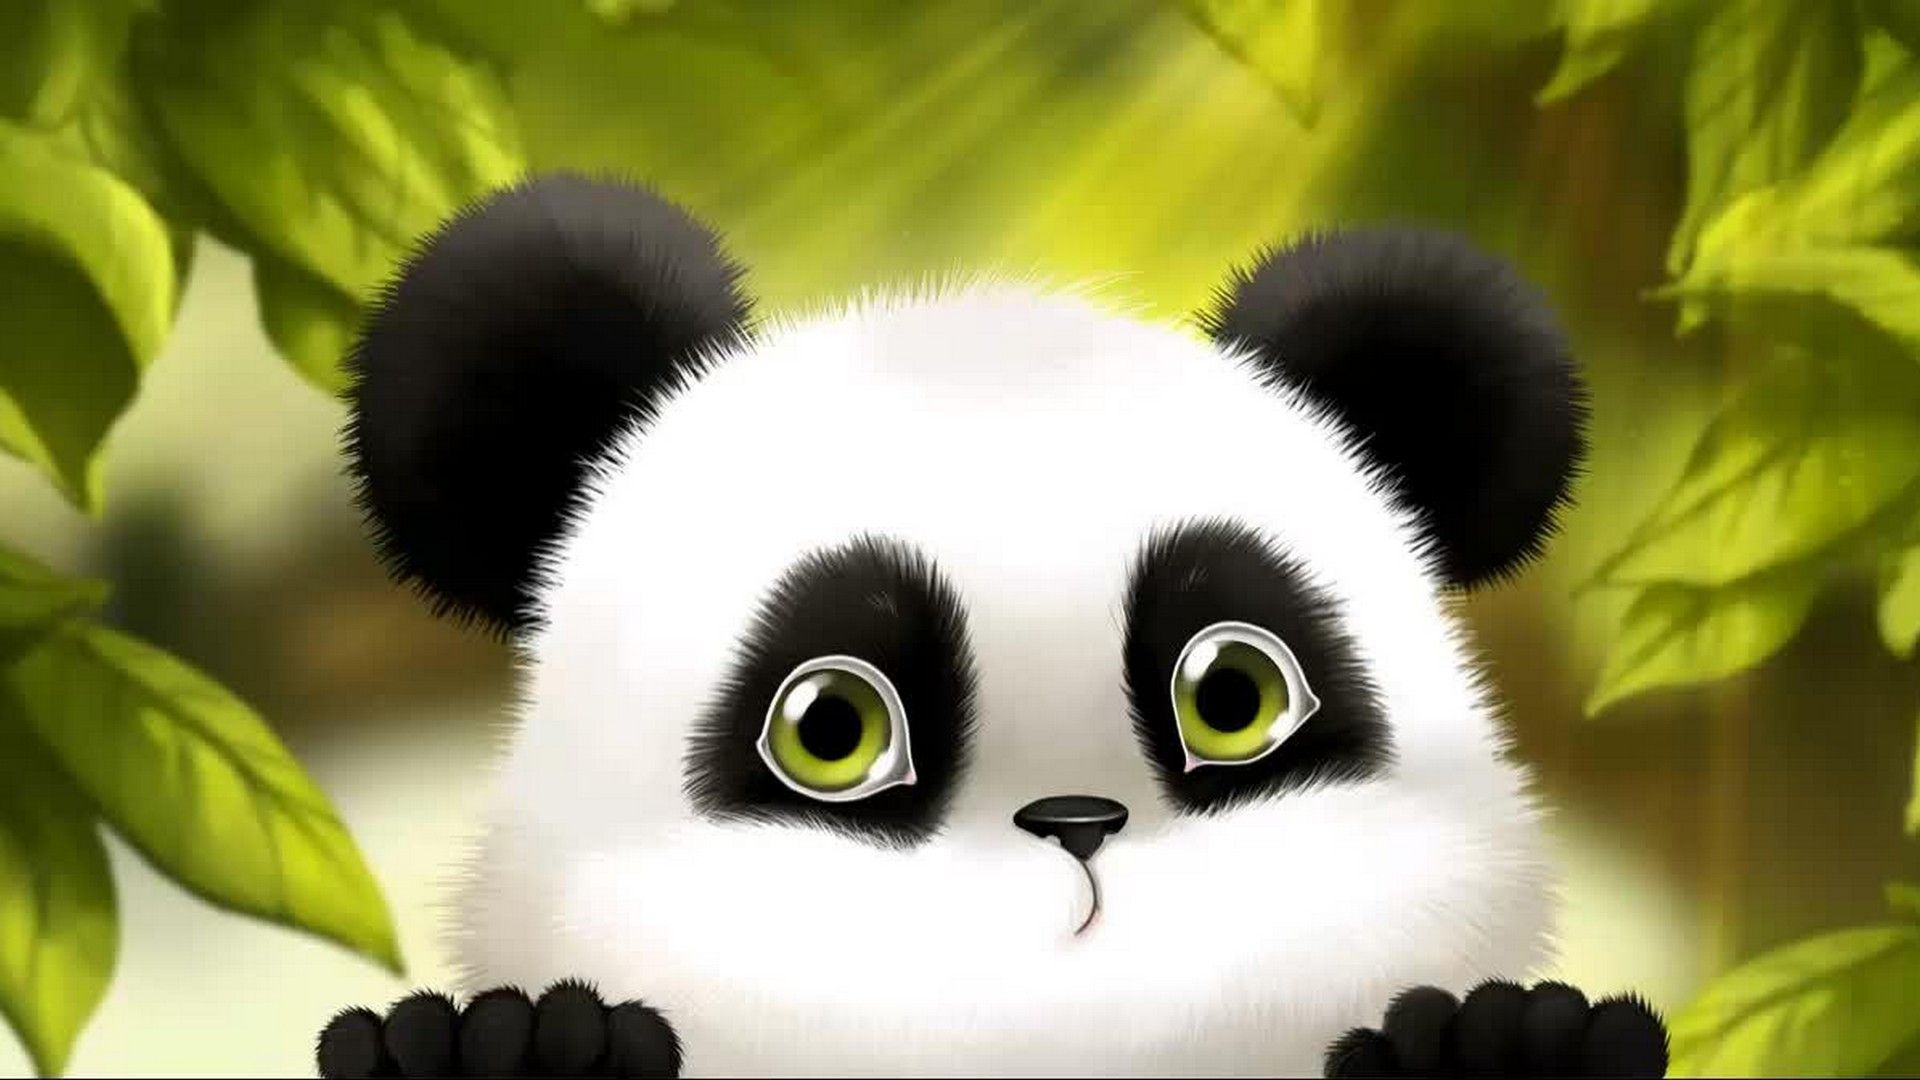 Cute Baby Panda Cartoon Wallpaper Best Hd Wallpapers Cartoon Panda Panda Images Panda Wallpapers